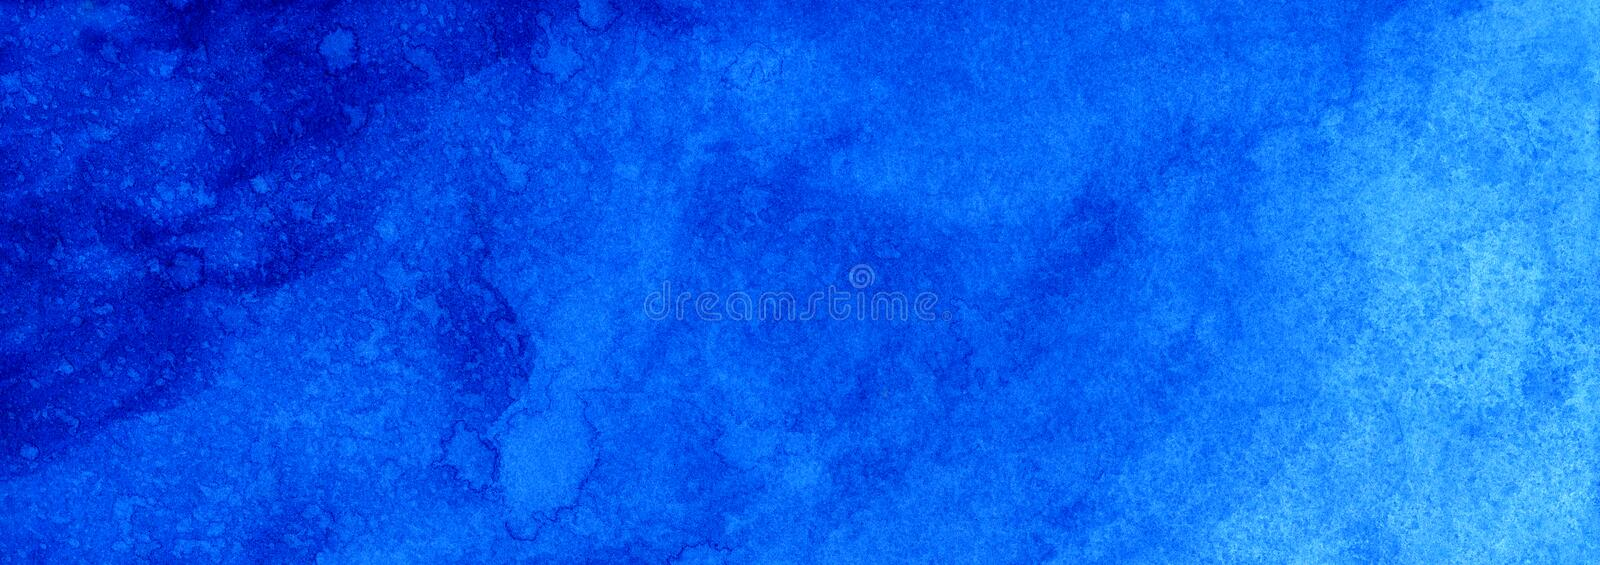 Web banner Marine or navy blue watercolor gradient fill background. Watercolour stains. Abstract painted template with paper textu. Re stock image